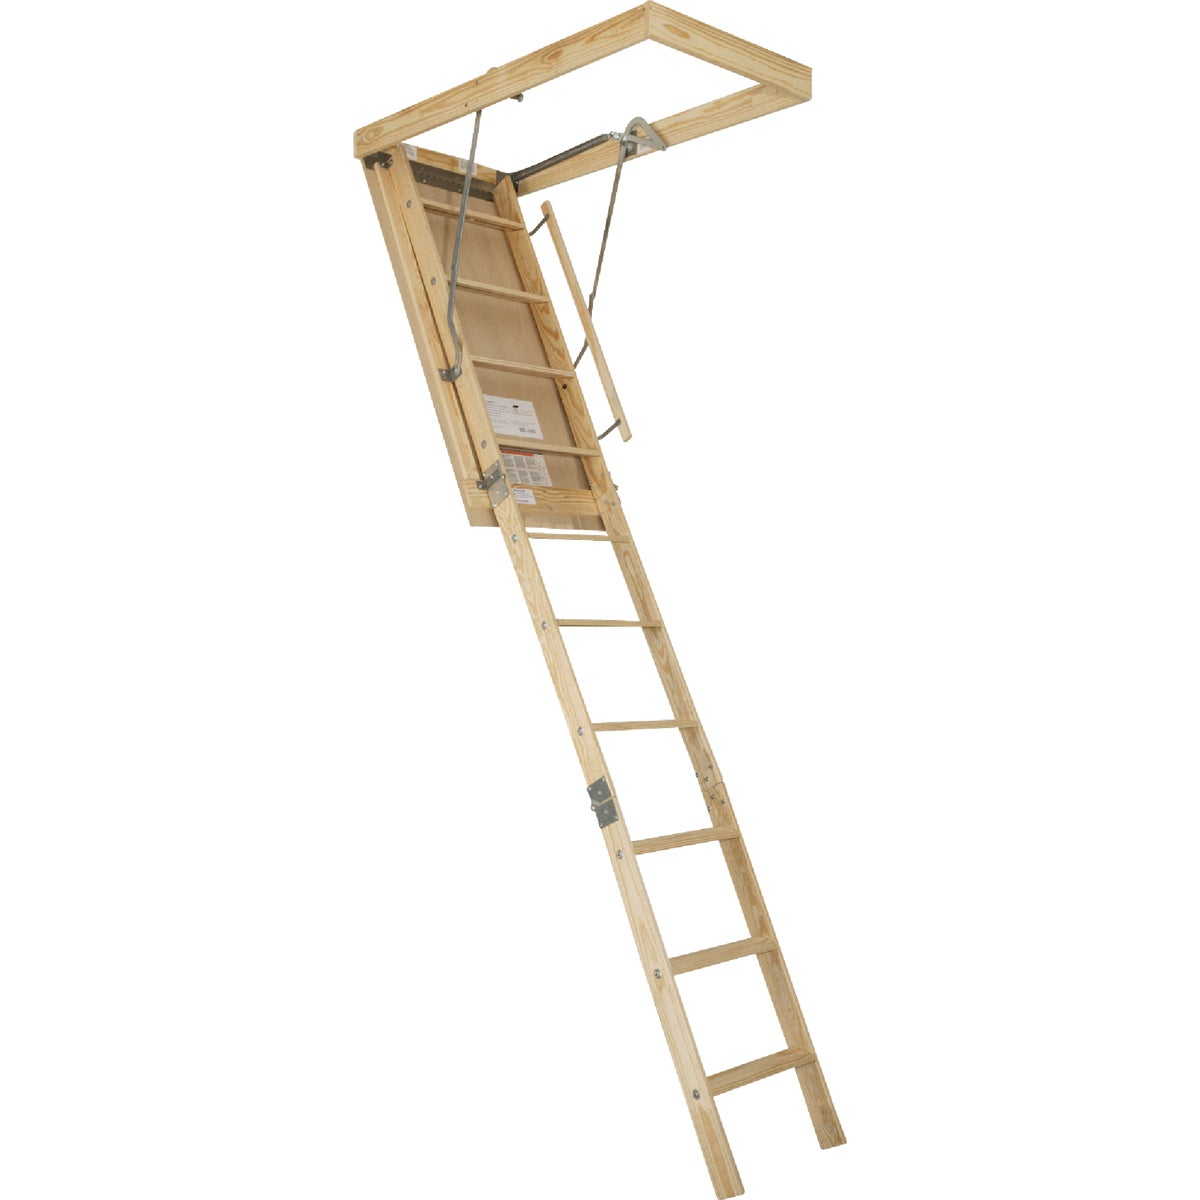 22X105 FIRE ATTIC STAIR - BET89F by Louisville Ladder